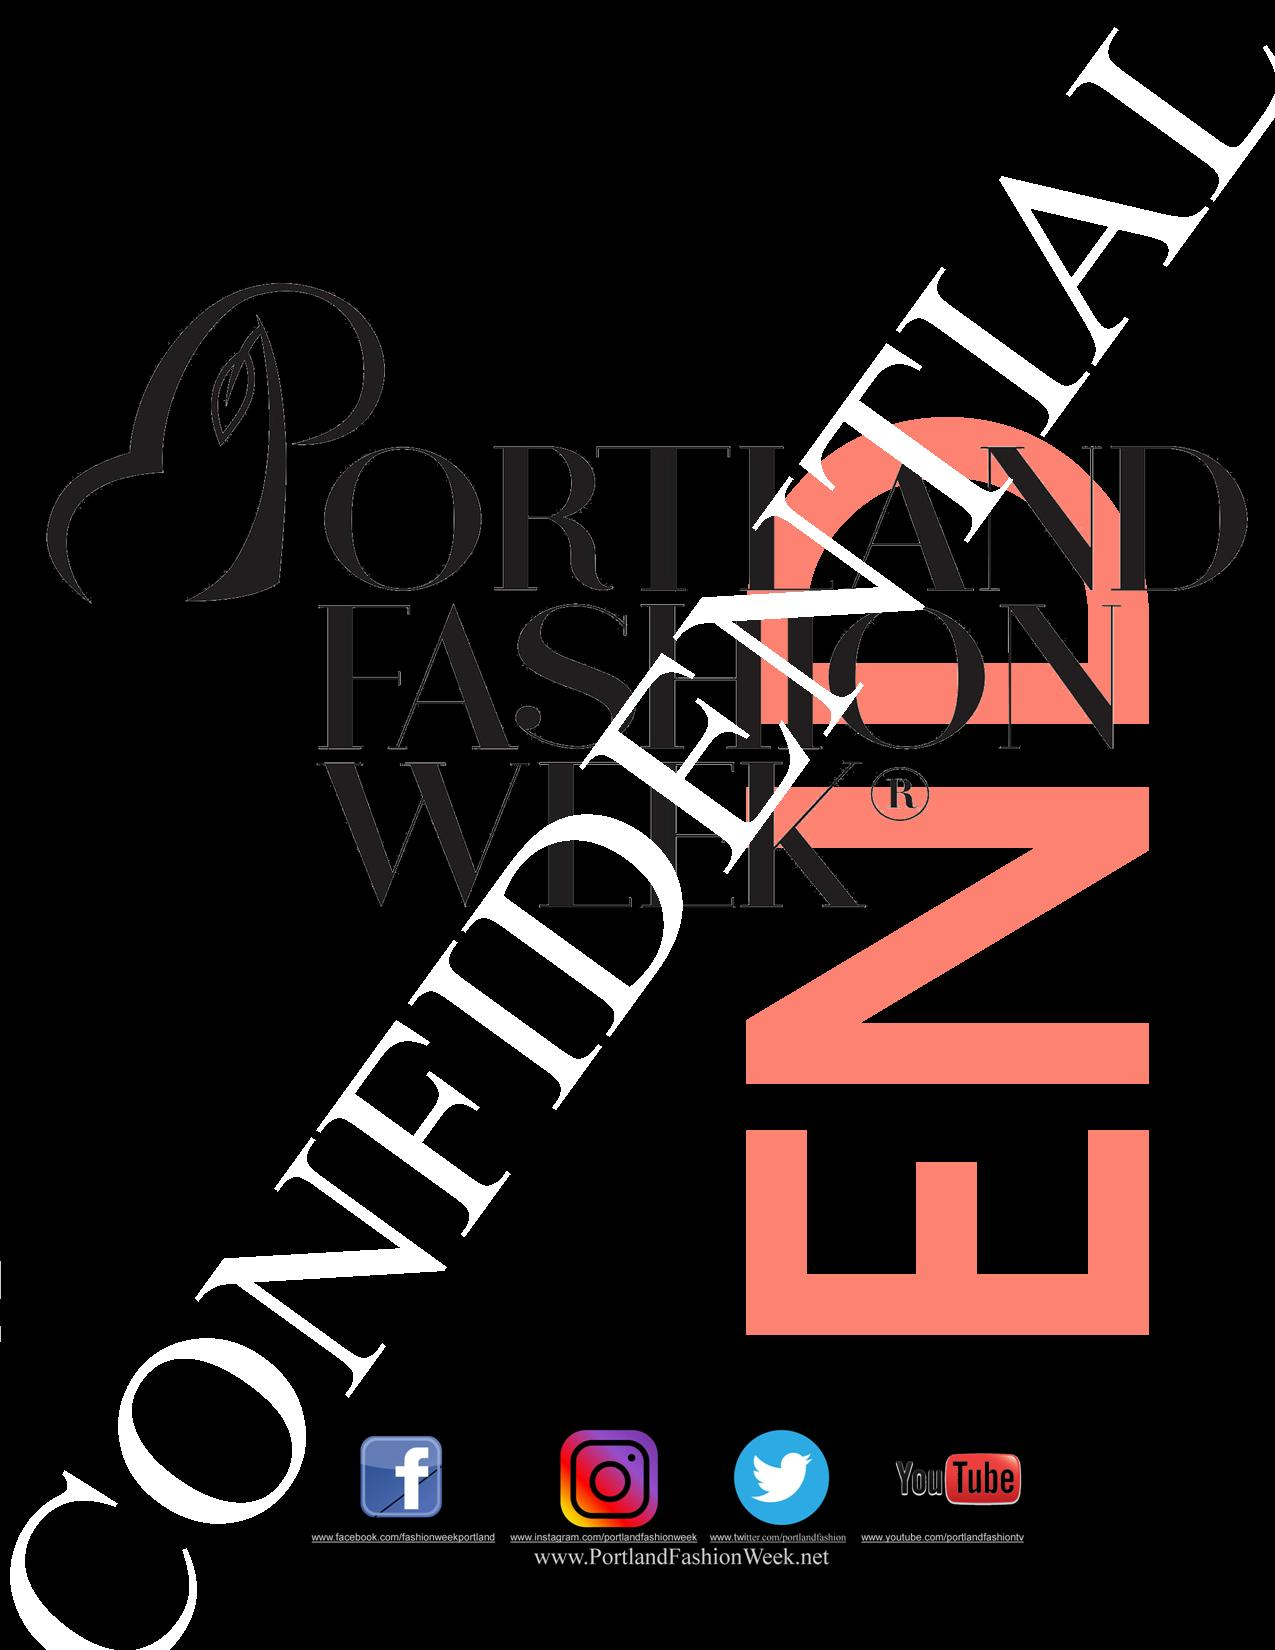 Mixers, Meet-ups, Meet 'n' Greets and Fashion! - Another first for the eco-chic Portland Fashion Week, so won't you please join us for the first ever Portland Fashion WeekEND! Four days of style, fashion, fun, and frivolity beginning Thursday Sept. 26 extending to Sunday Sept. 29. From Portland's most clever and happening locales. More info TBA!